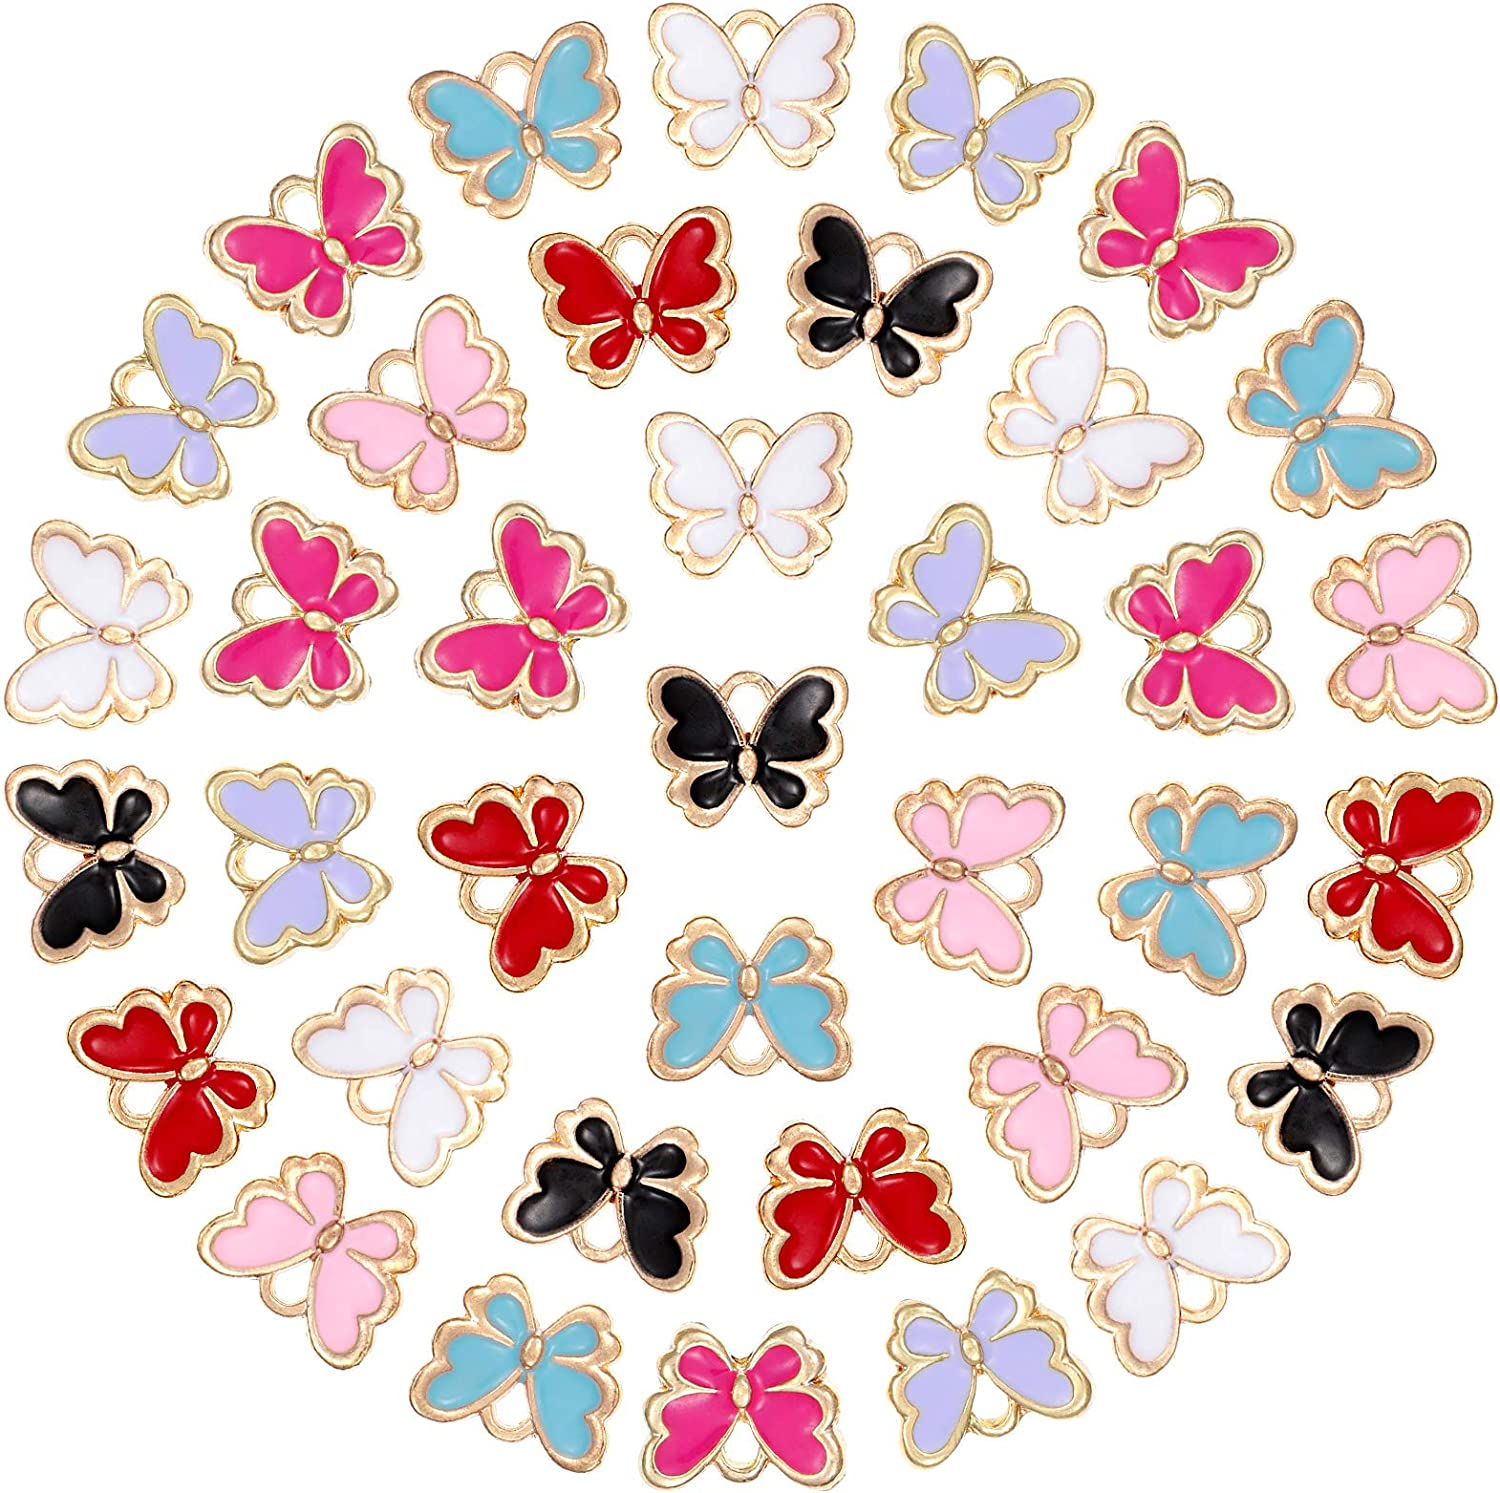 10 PACK Butterfly Pendants Charm Colorful Enamel Animal For DIY Jewelry Making